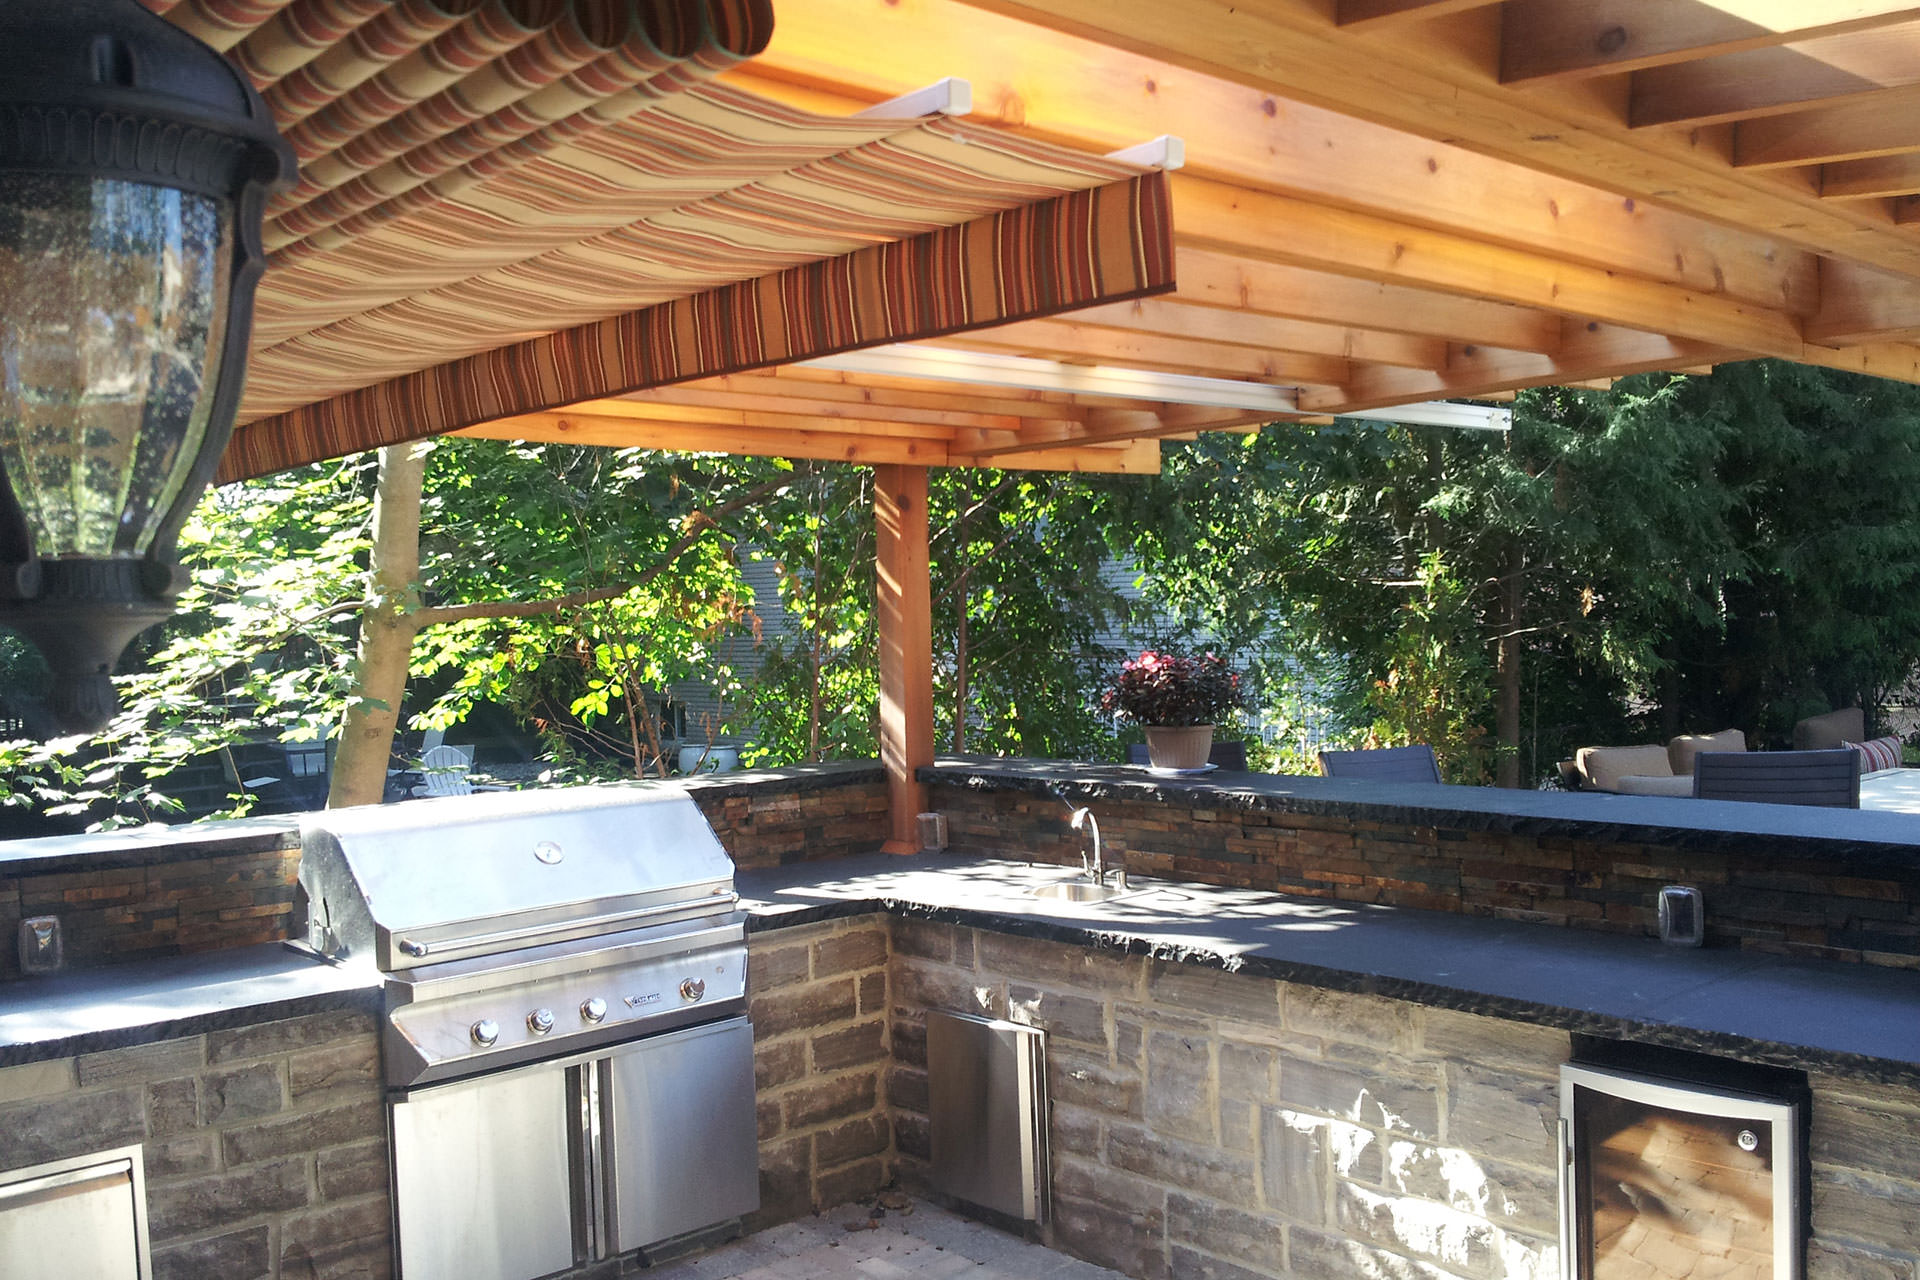 Protecting More Space With Cantilevered Canopies